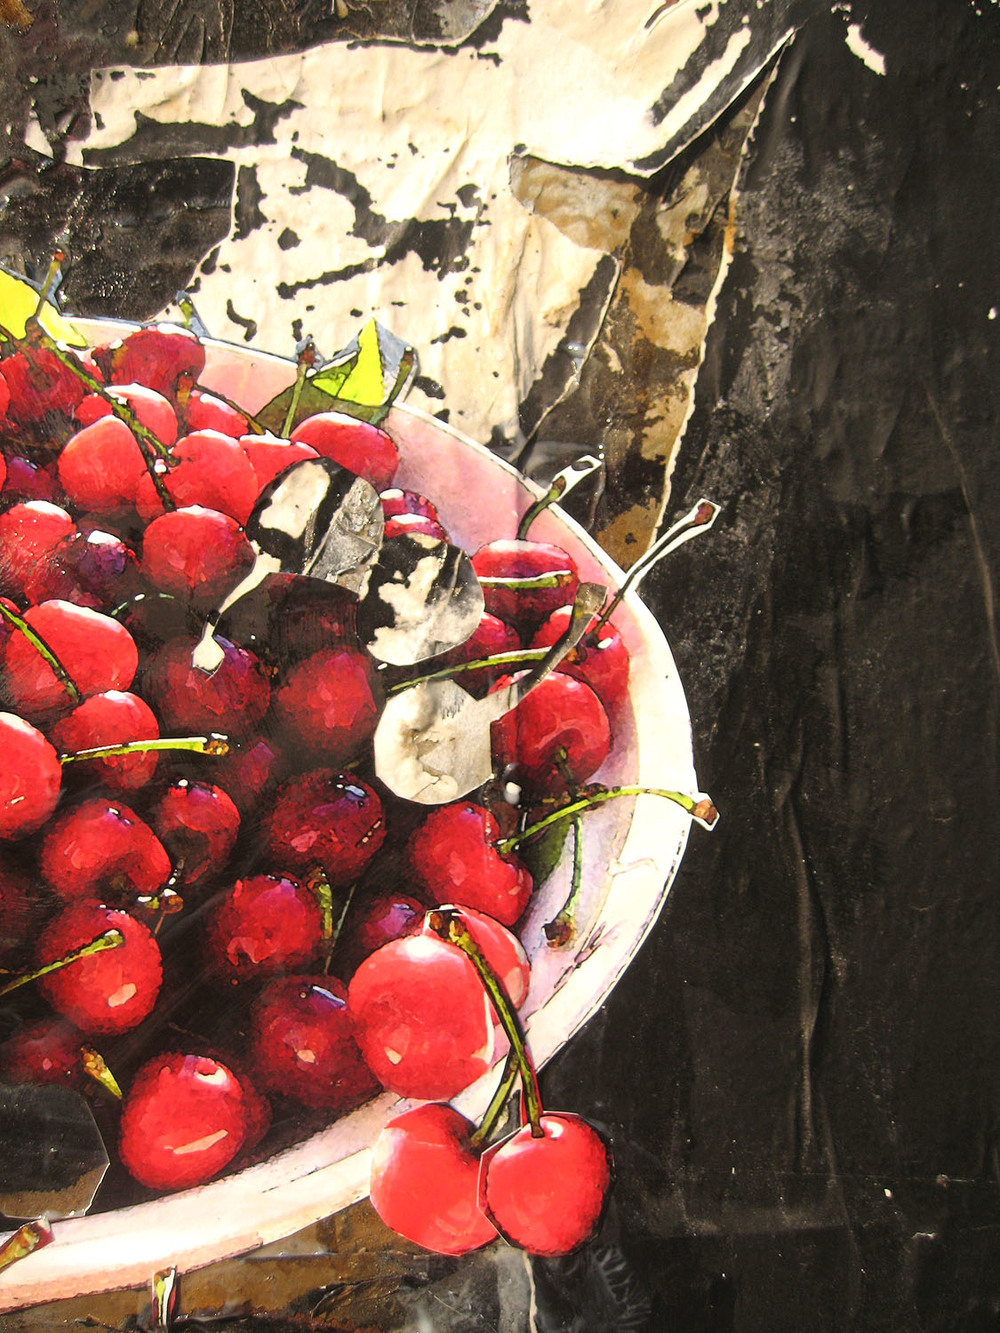 Bowl of Cherries on Howard St. (detail), NYC